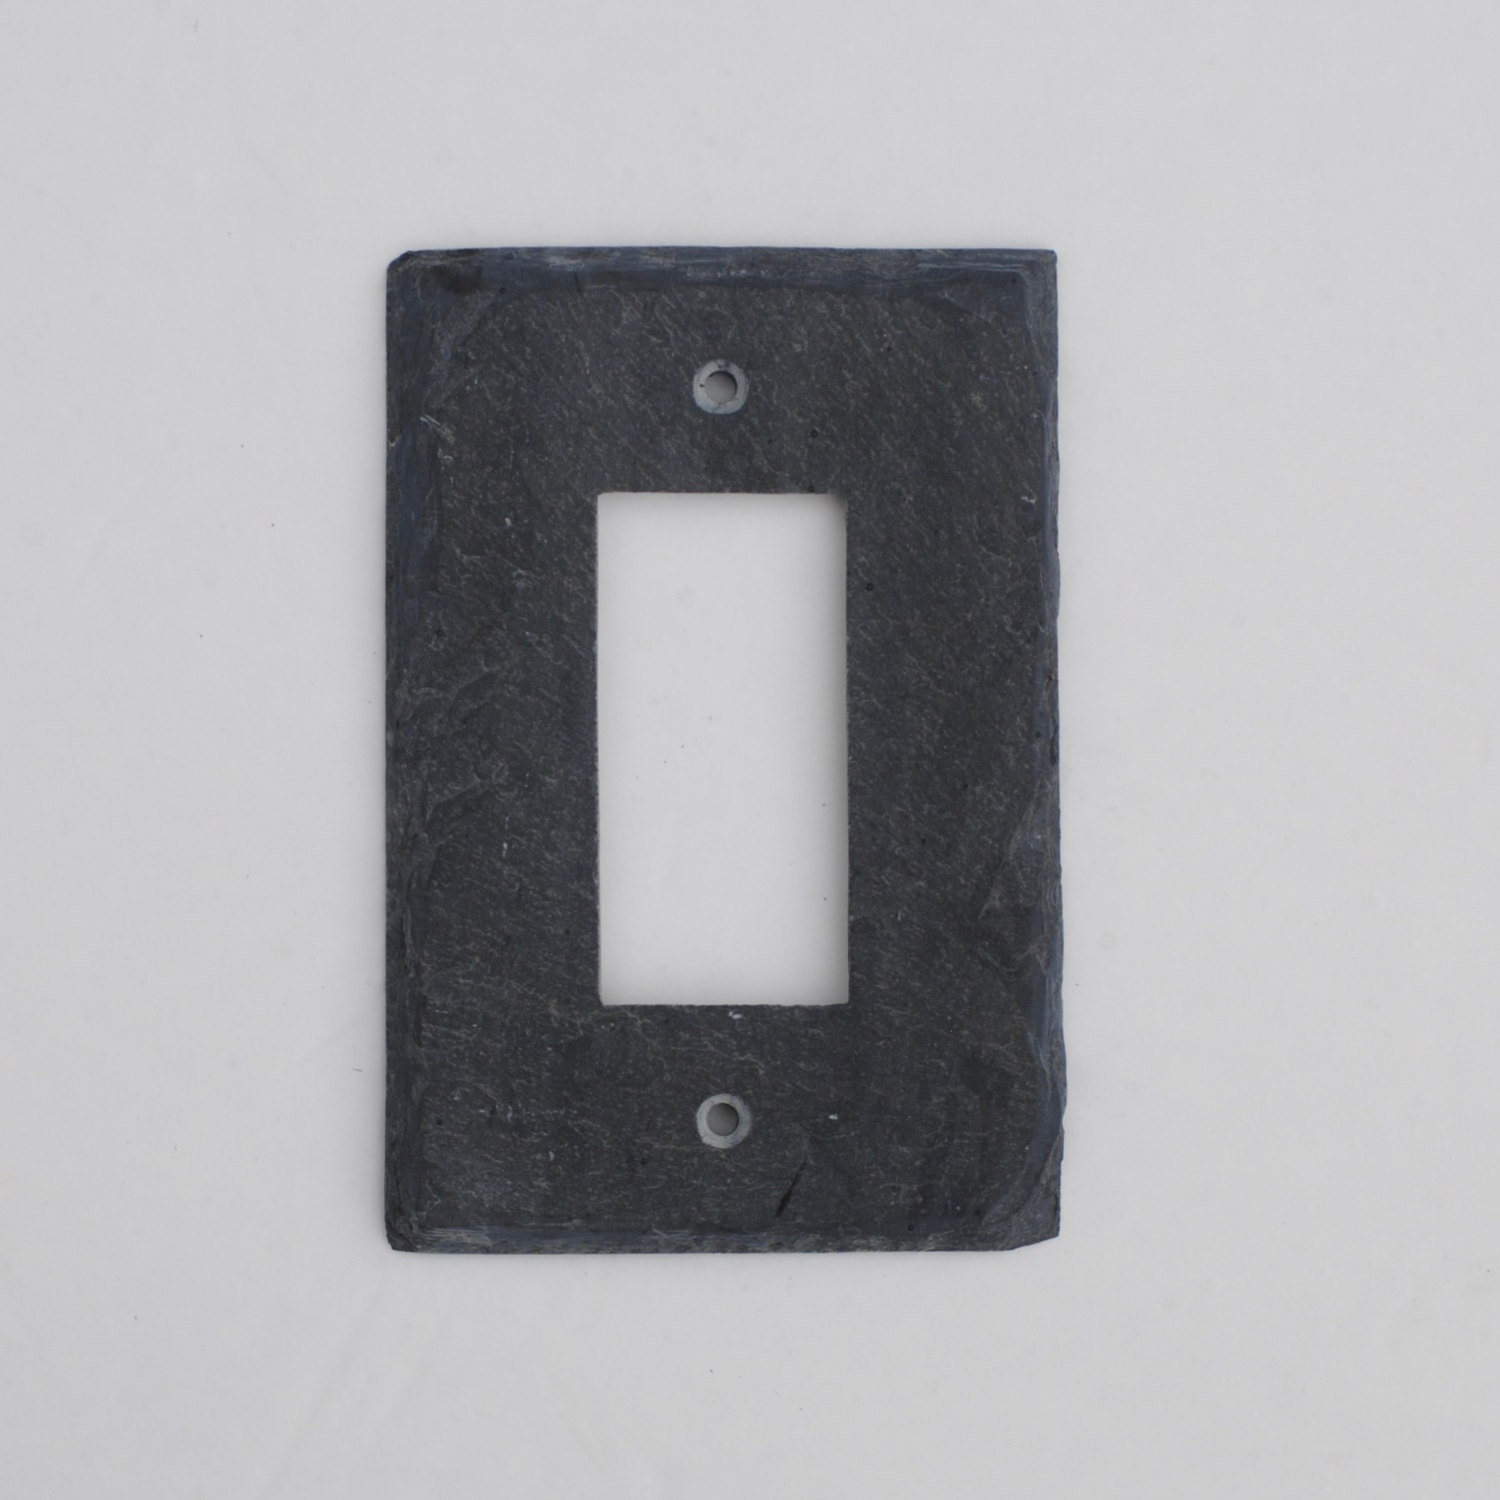 Decorative wall plates for light switches wanker for for Decor light switch